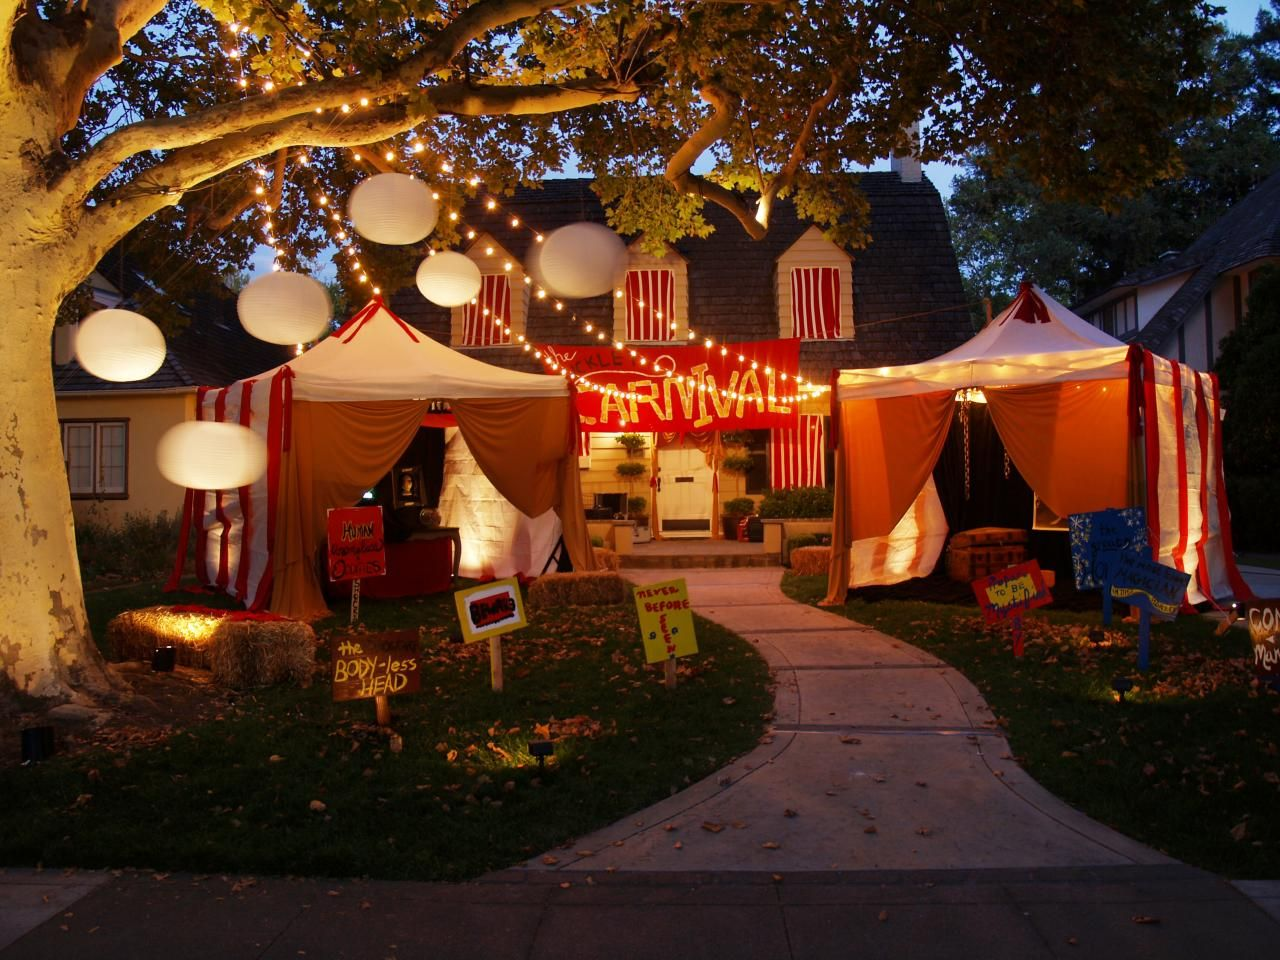 creepy carnival tents for an outdoor halloween theme clown